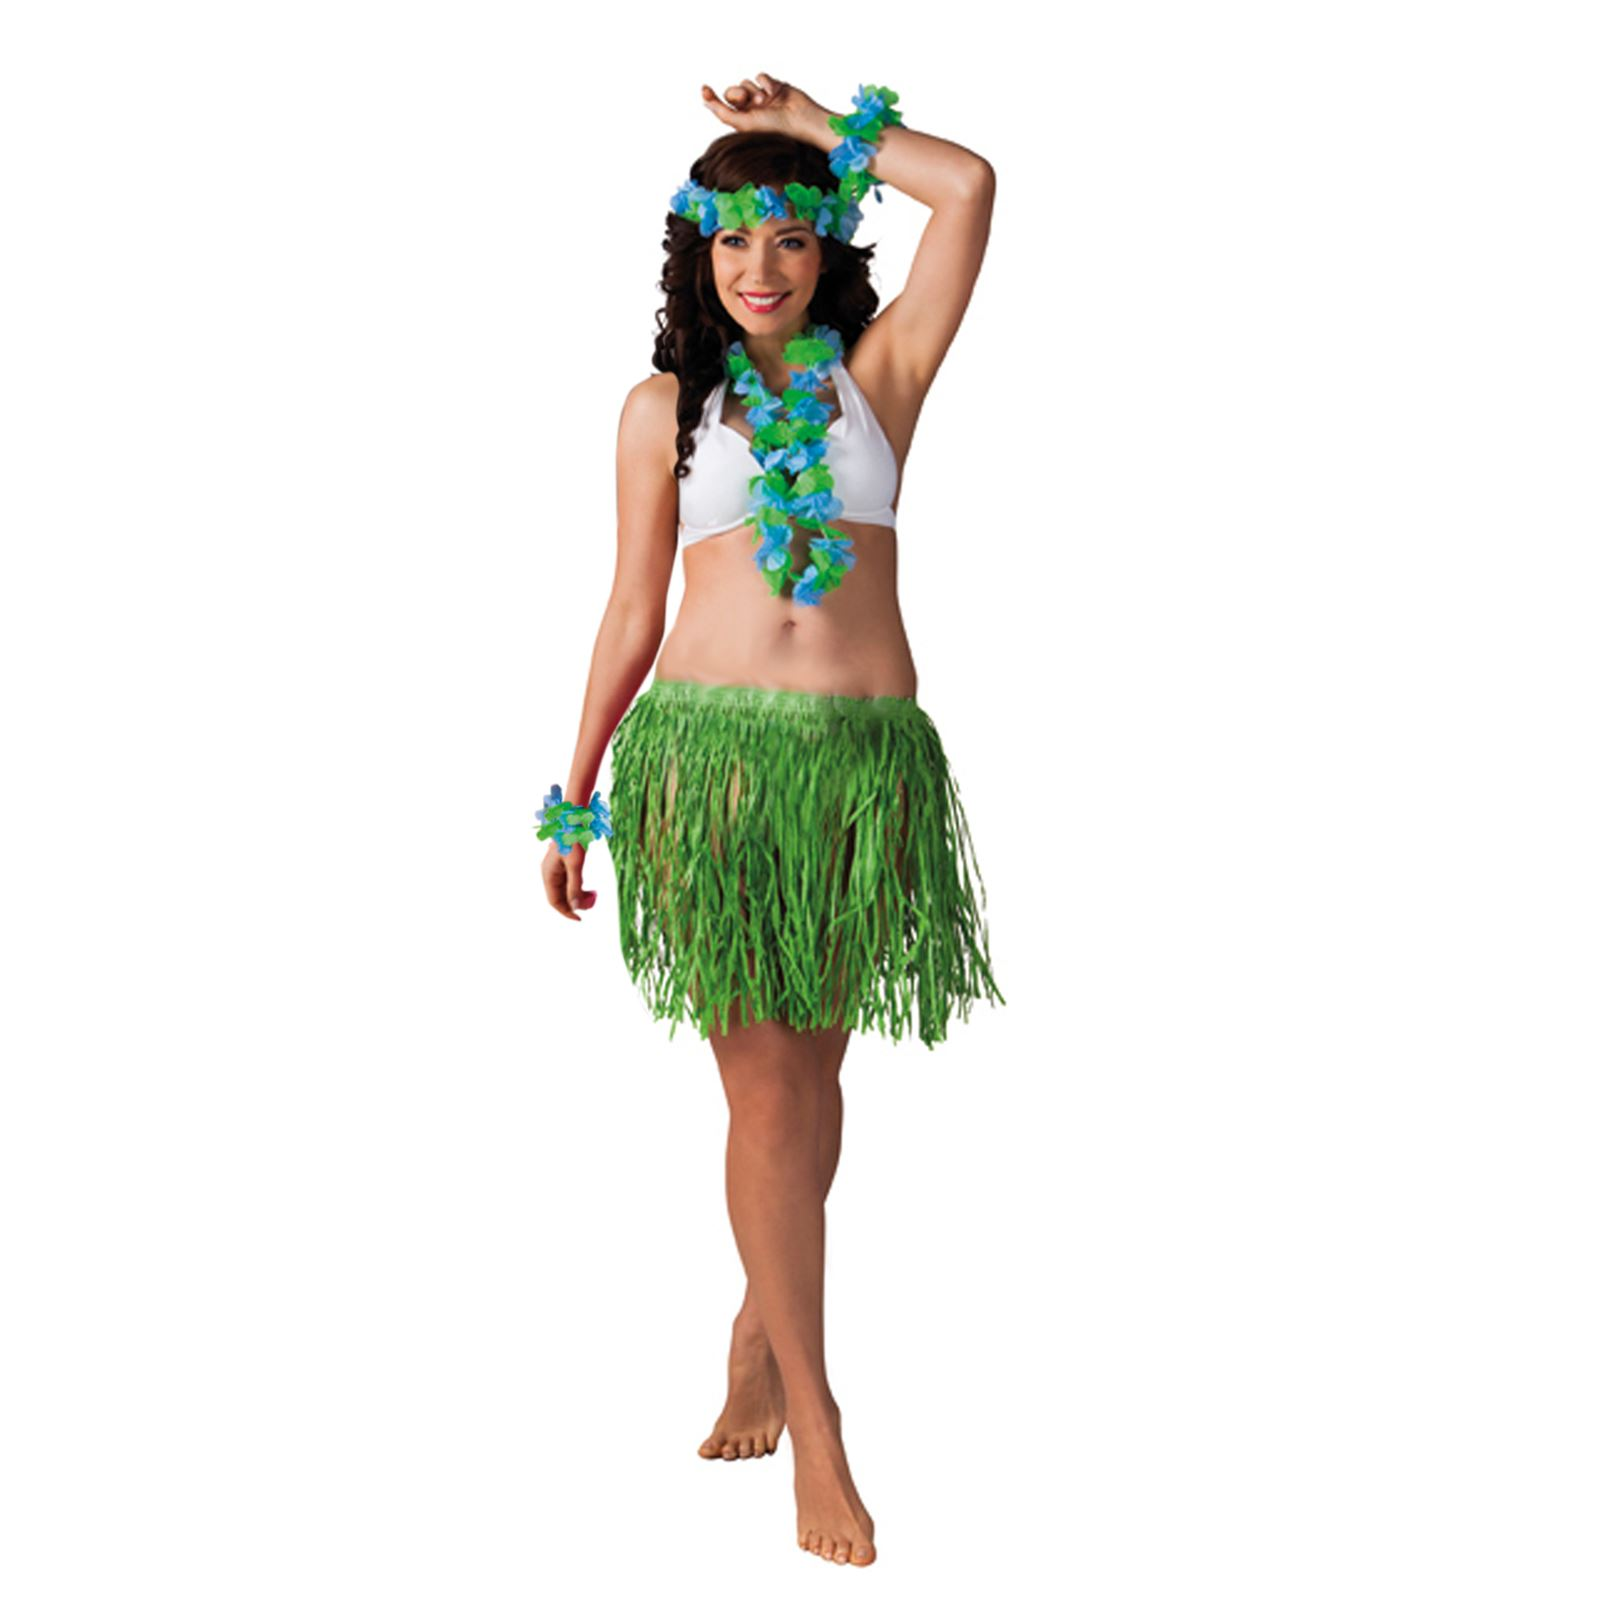 original hawaii outfit for girls